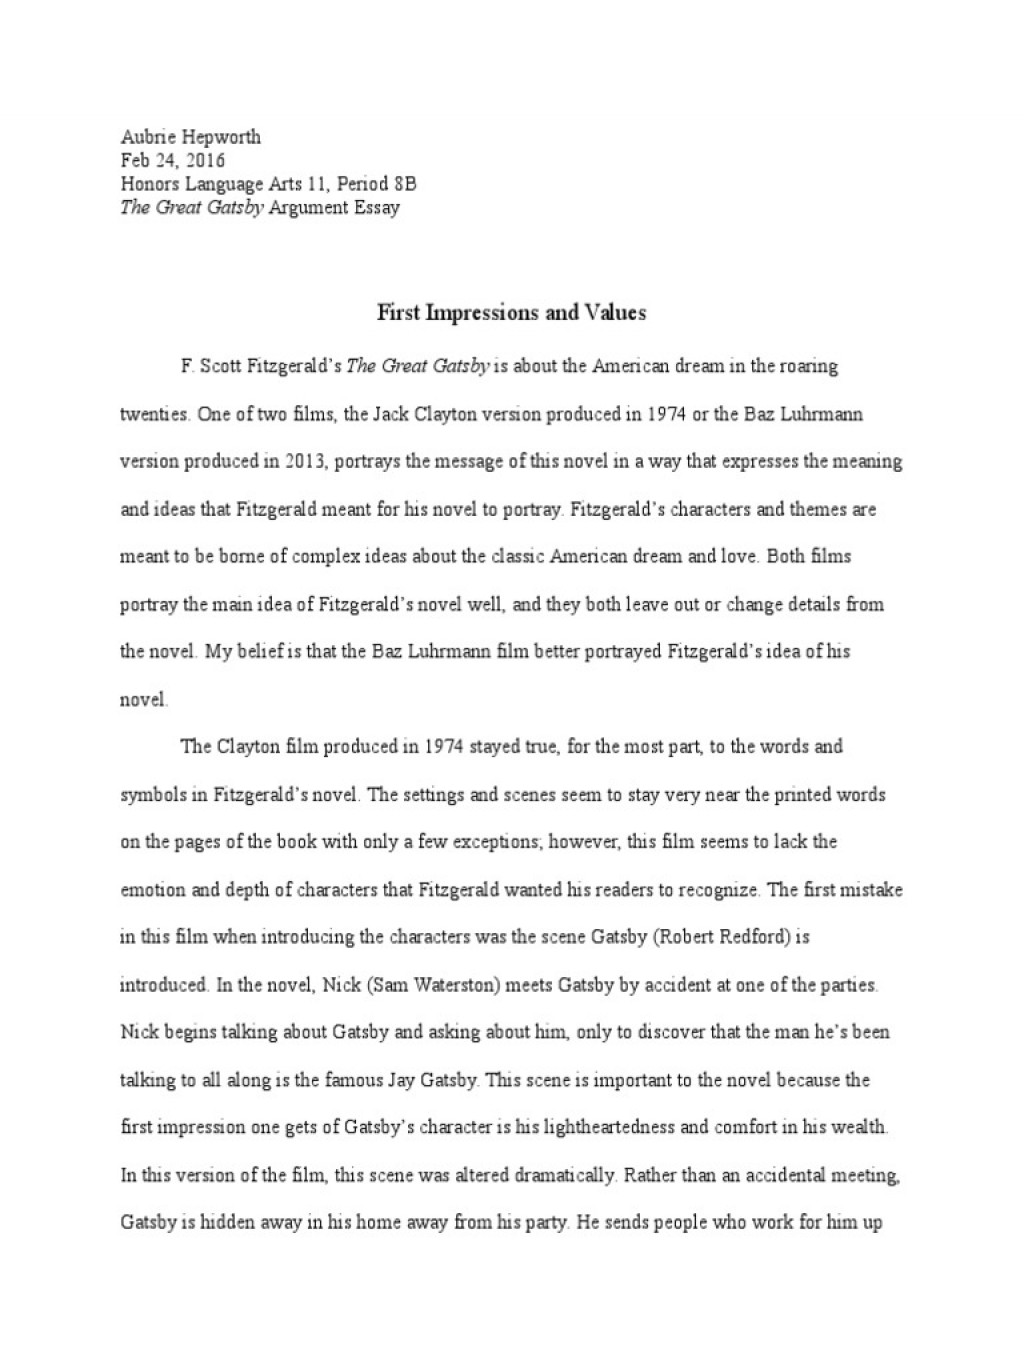 002 Great Gatsby American Dream Essay Example The Argument Scott Fitzgerald Argumentative Research About Is Attainable Prompt Still Alive Topics On Fantastic Conclusion Pdf Free Large